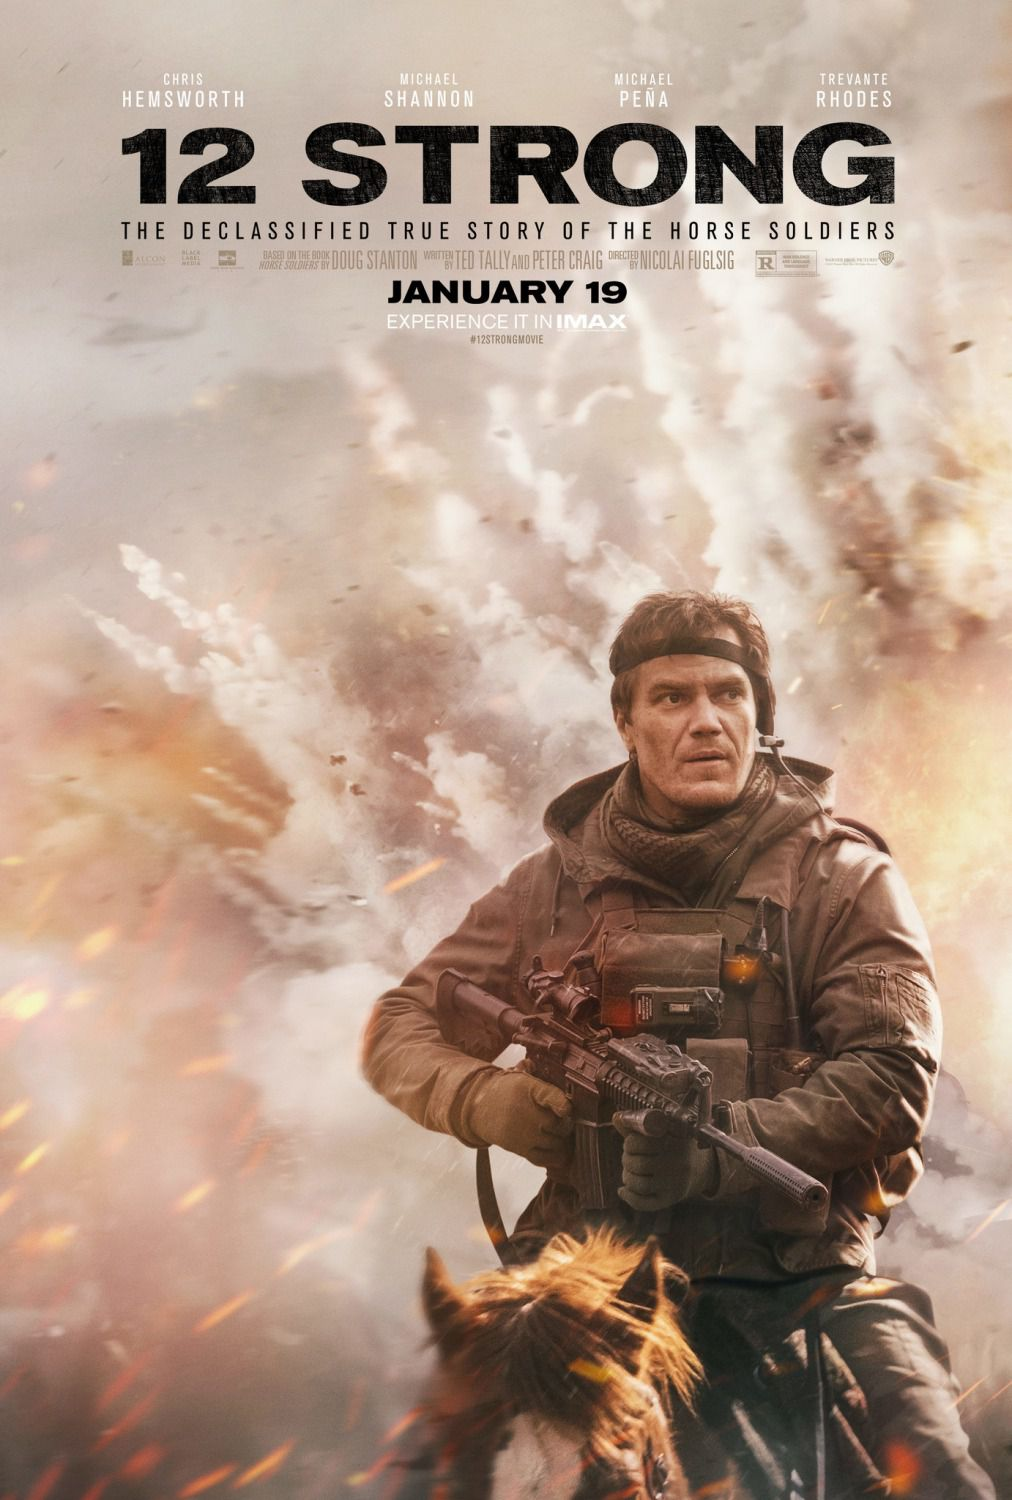 12 Strong the Declassified True Story of the Horse Soldiers  Michael Shannon